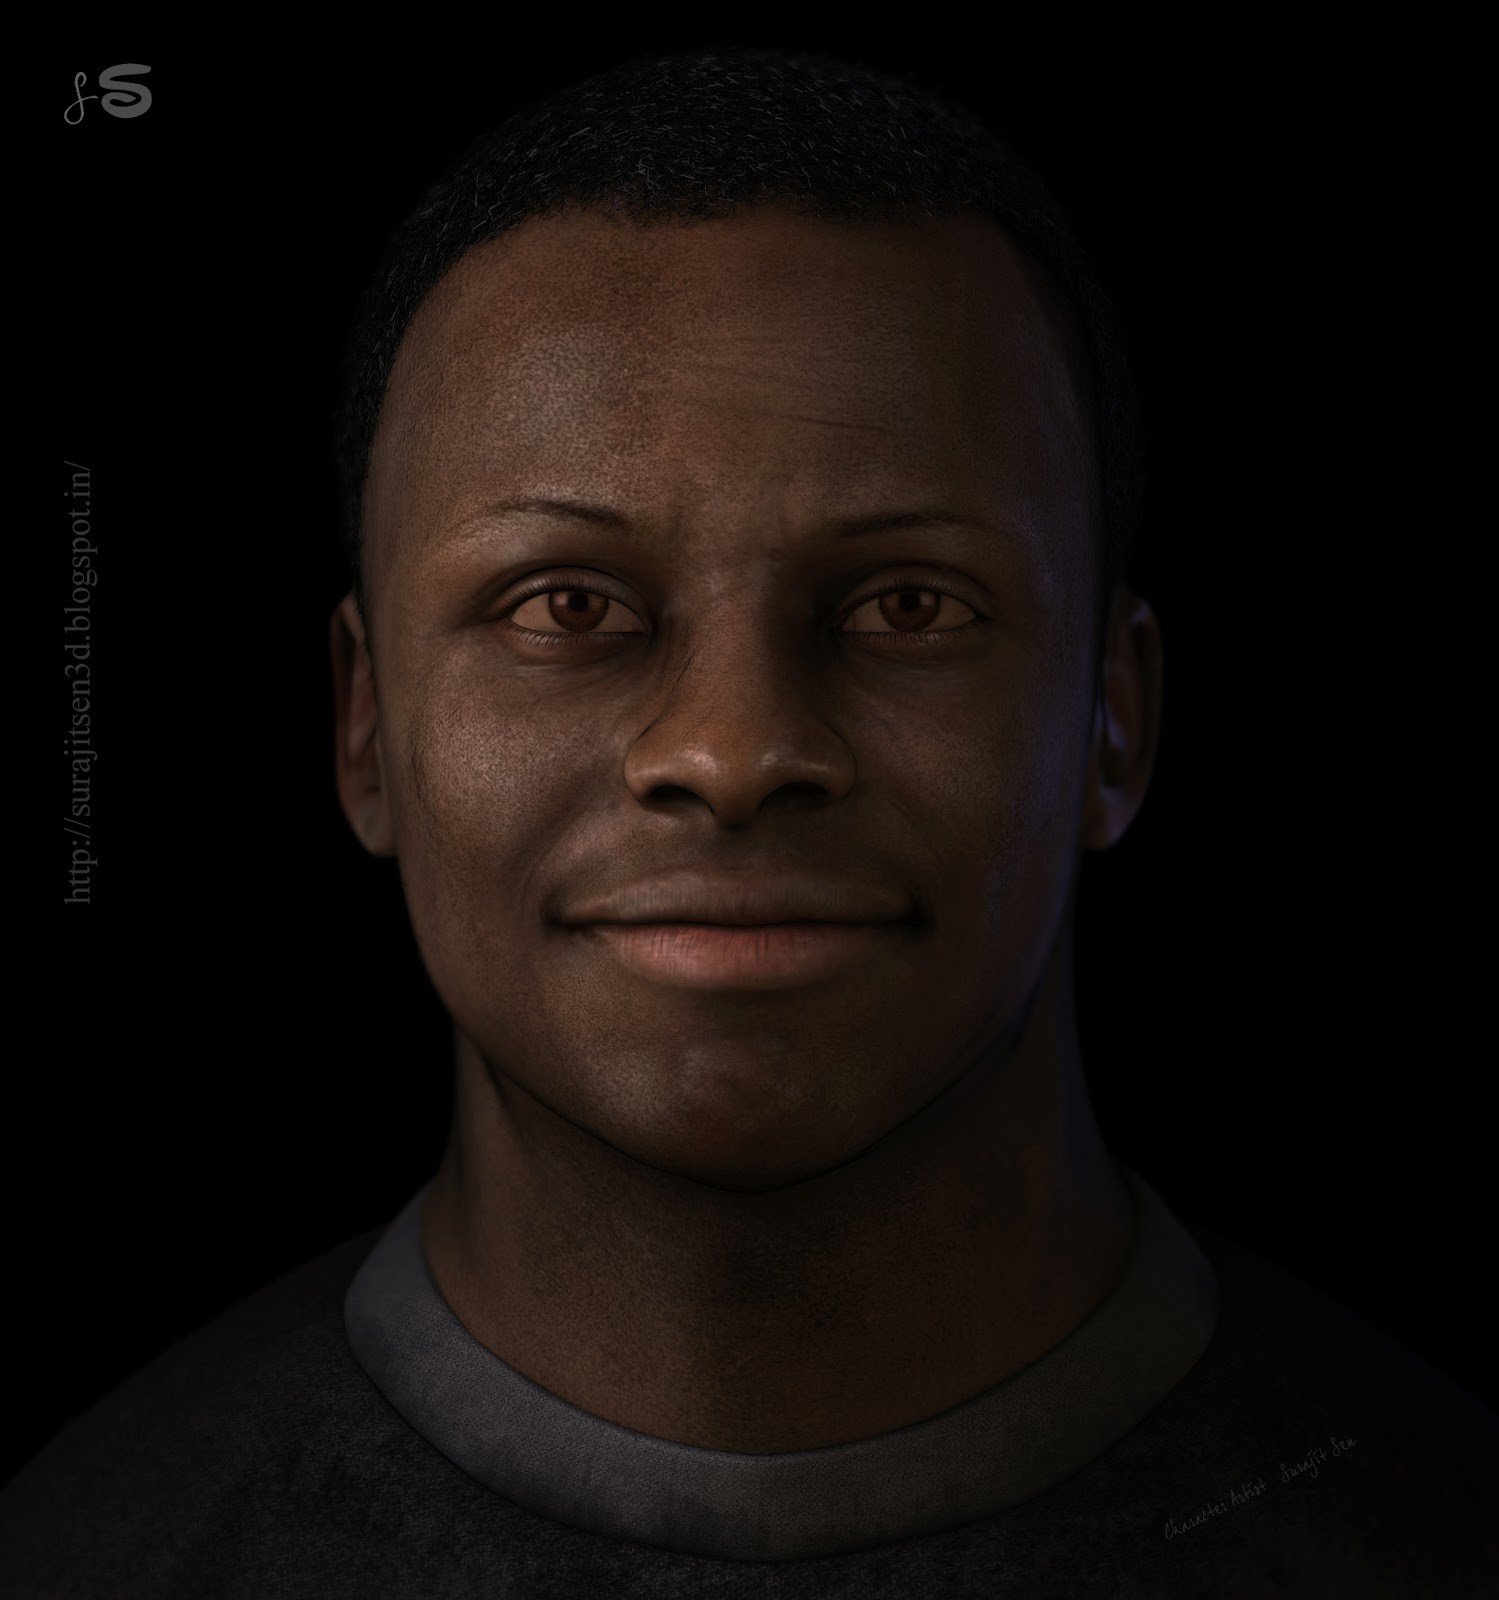 NUBIA_ Cinematic Character _ A real-time portrait _By Surajit Sen